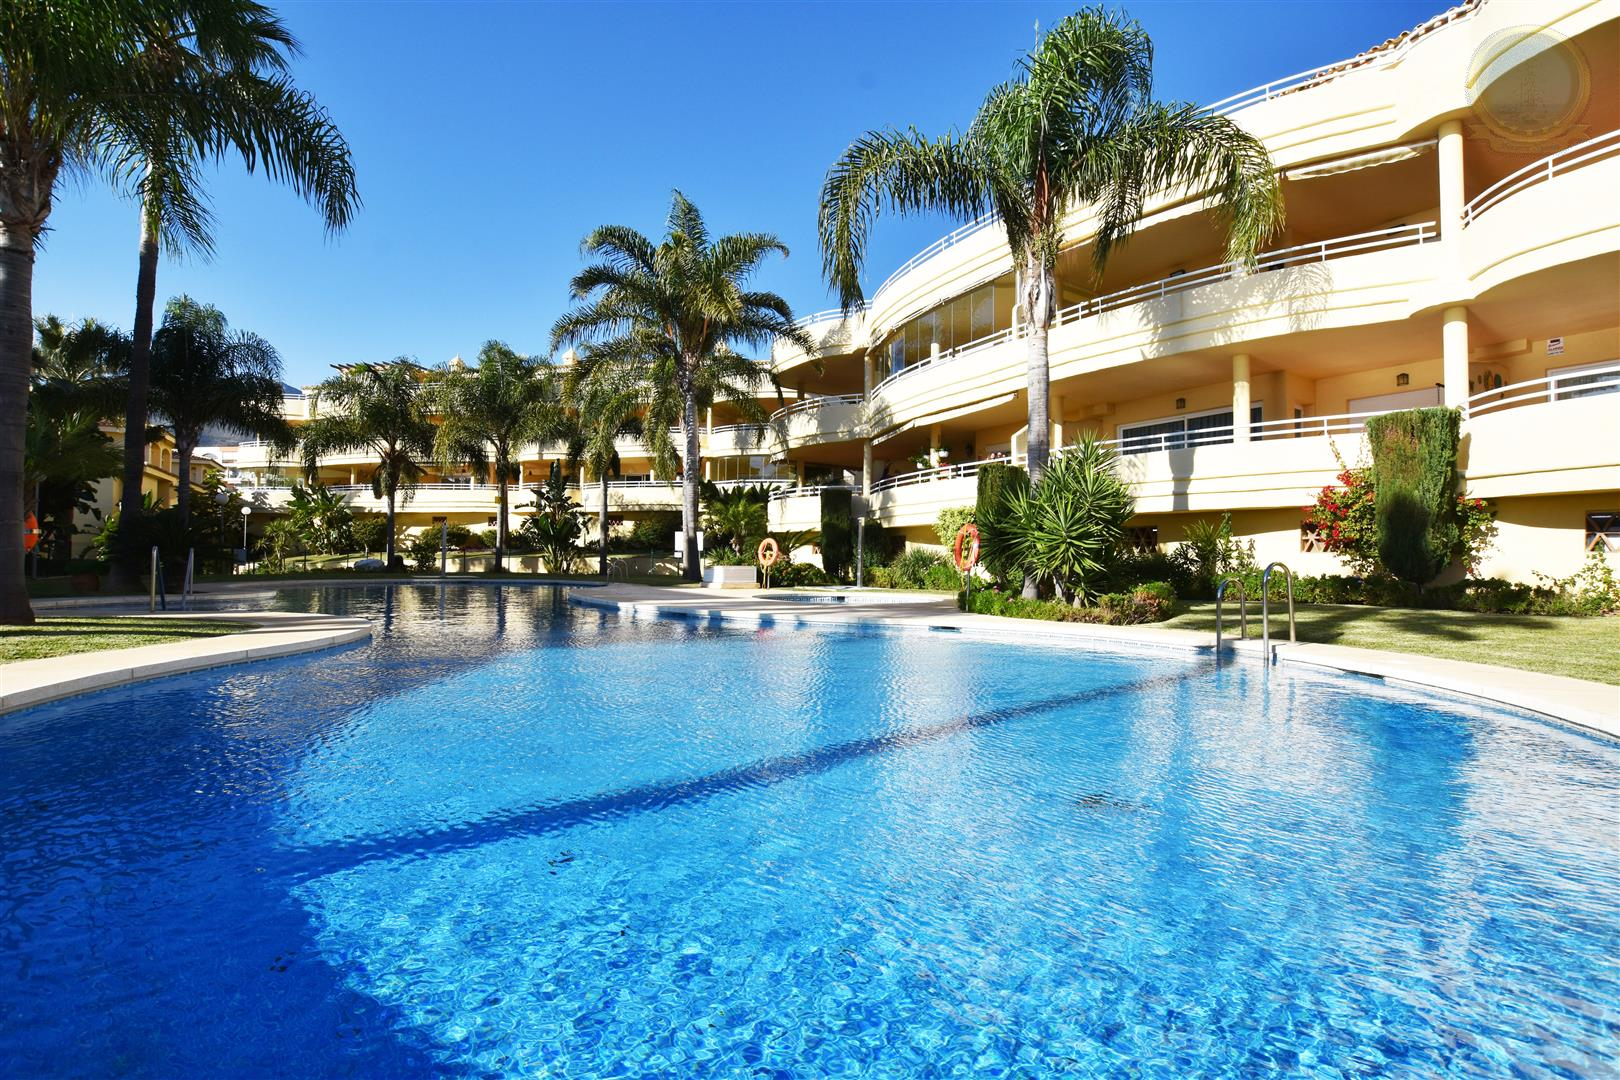 example of apartment for sale in Costaquebrada community